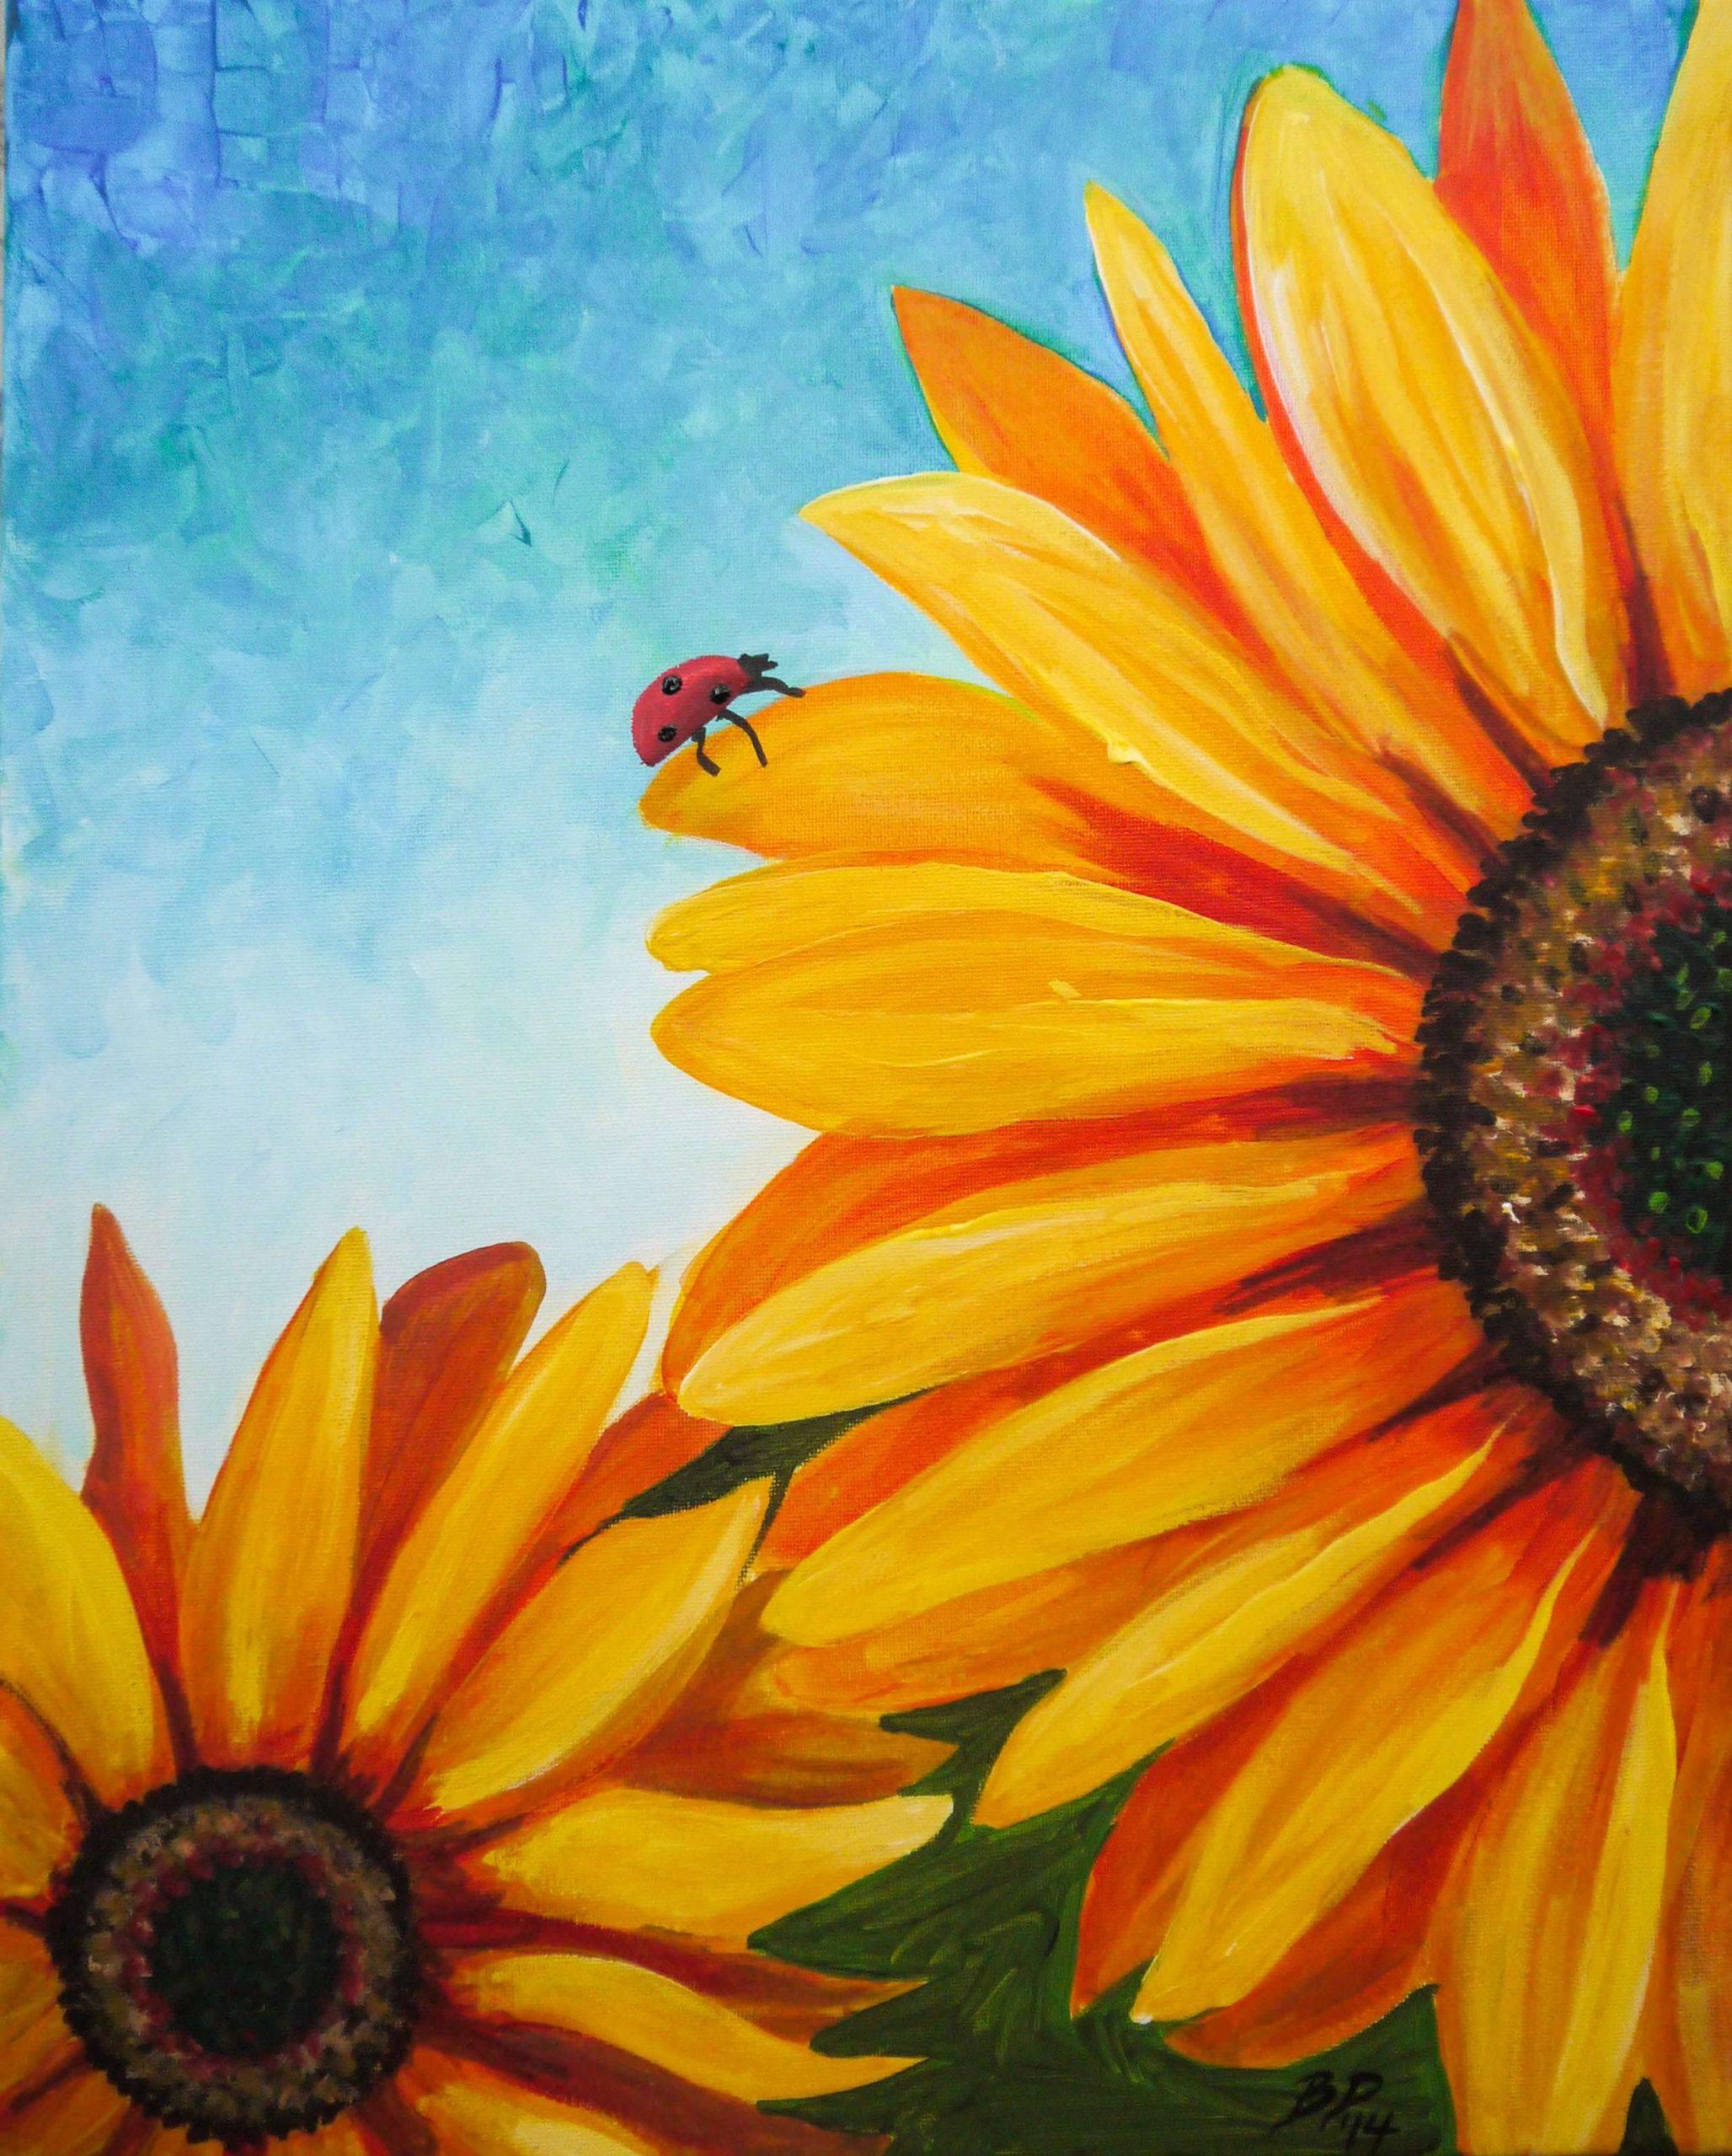 Running-Out-of-Painting-Ideas-?-Here-are-5-Tips-!-#-1-Sunflowers